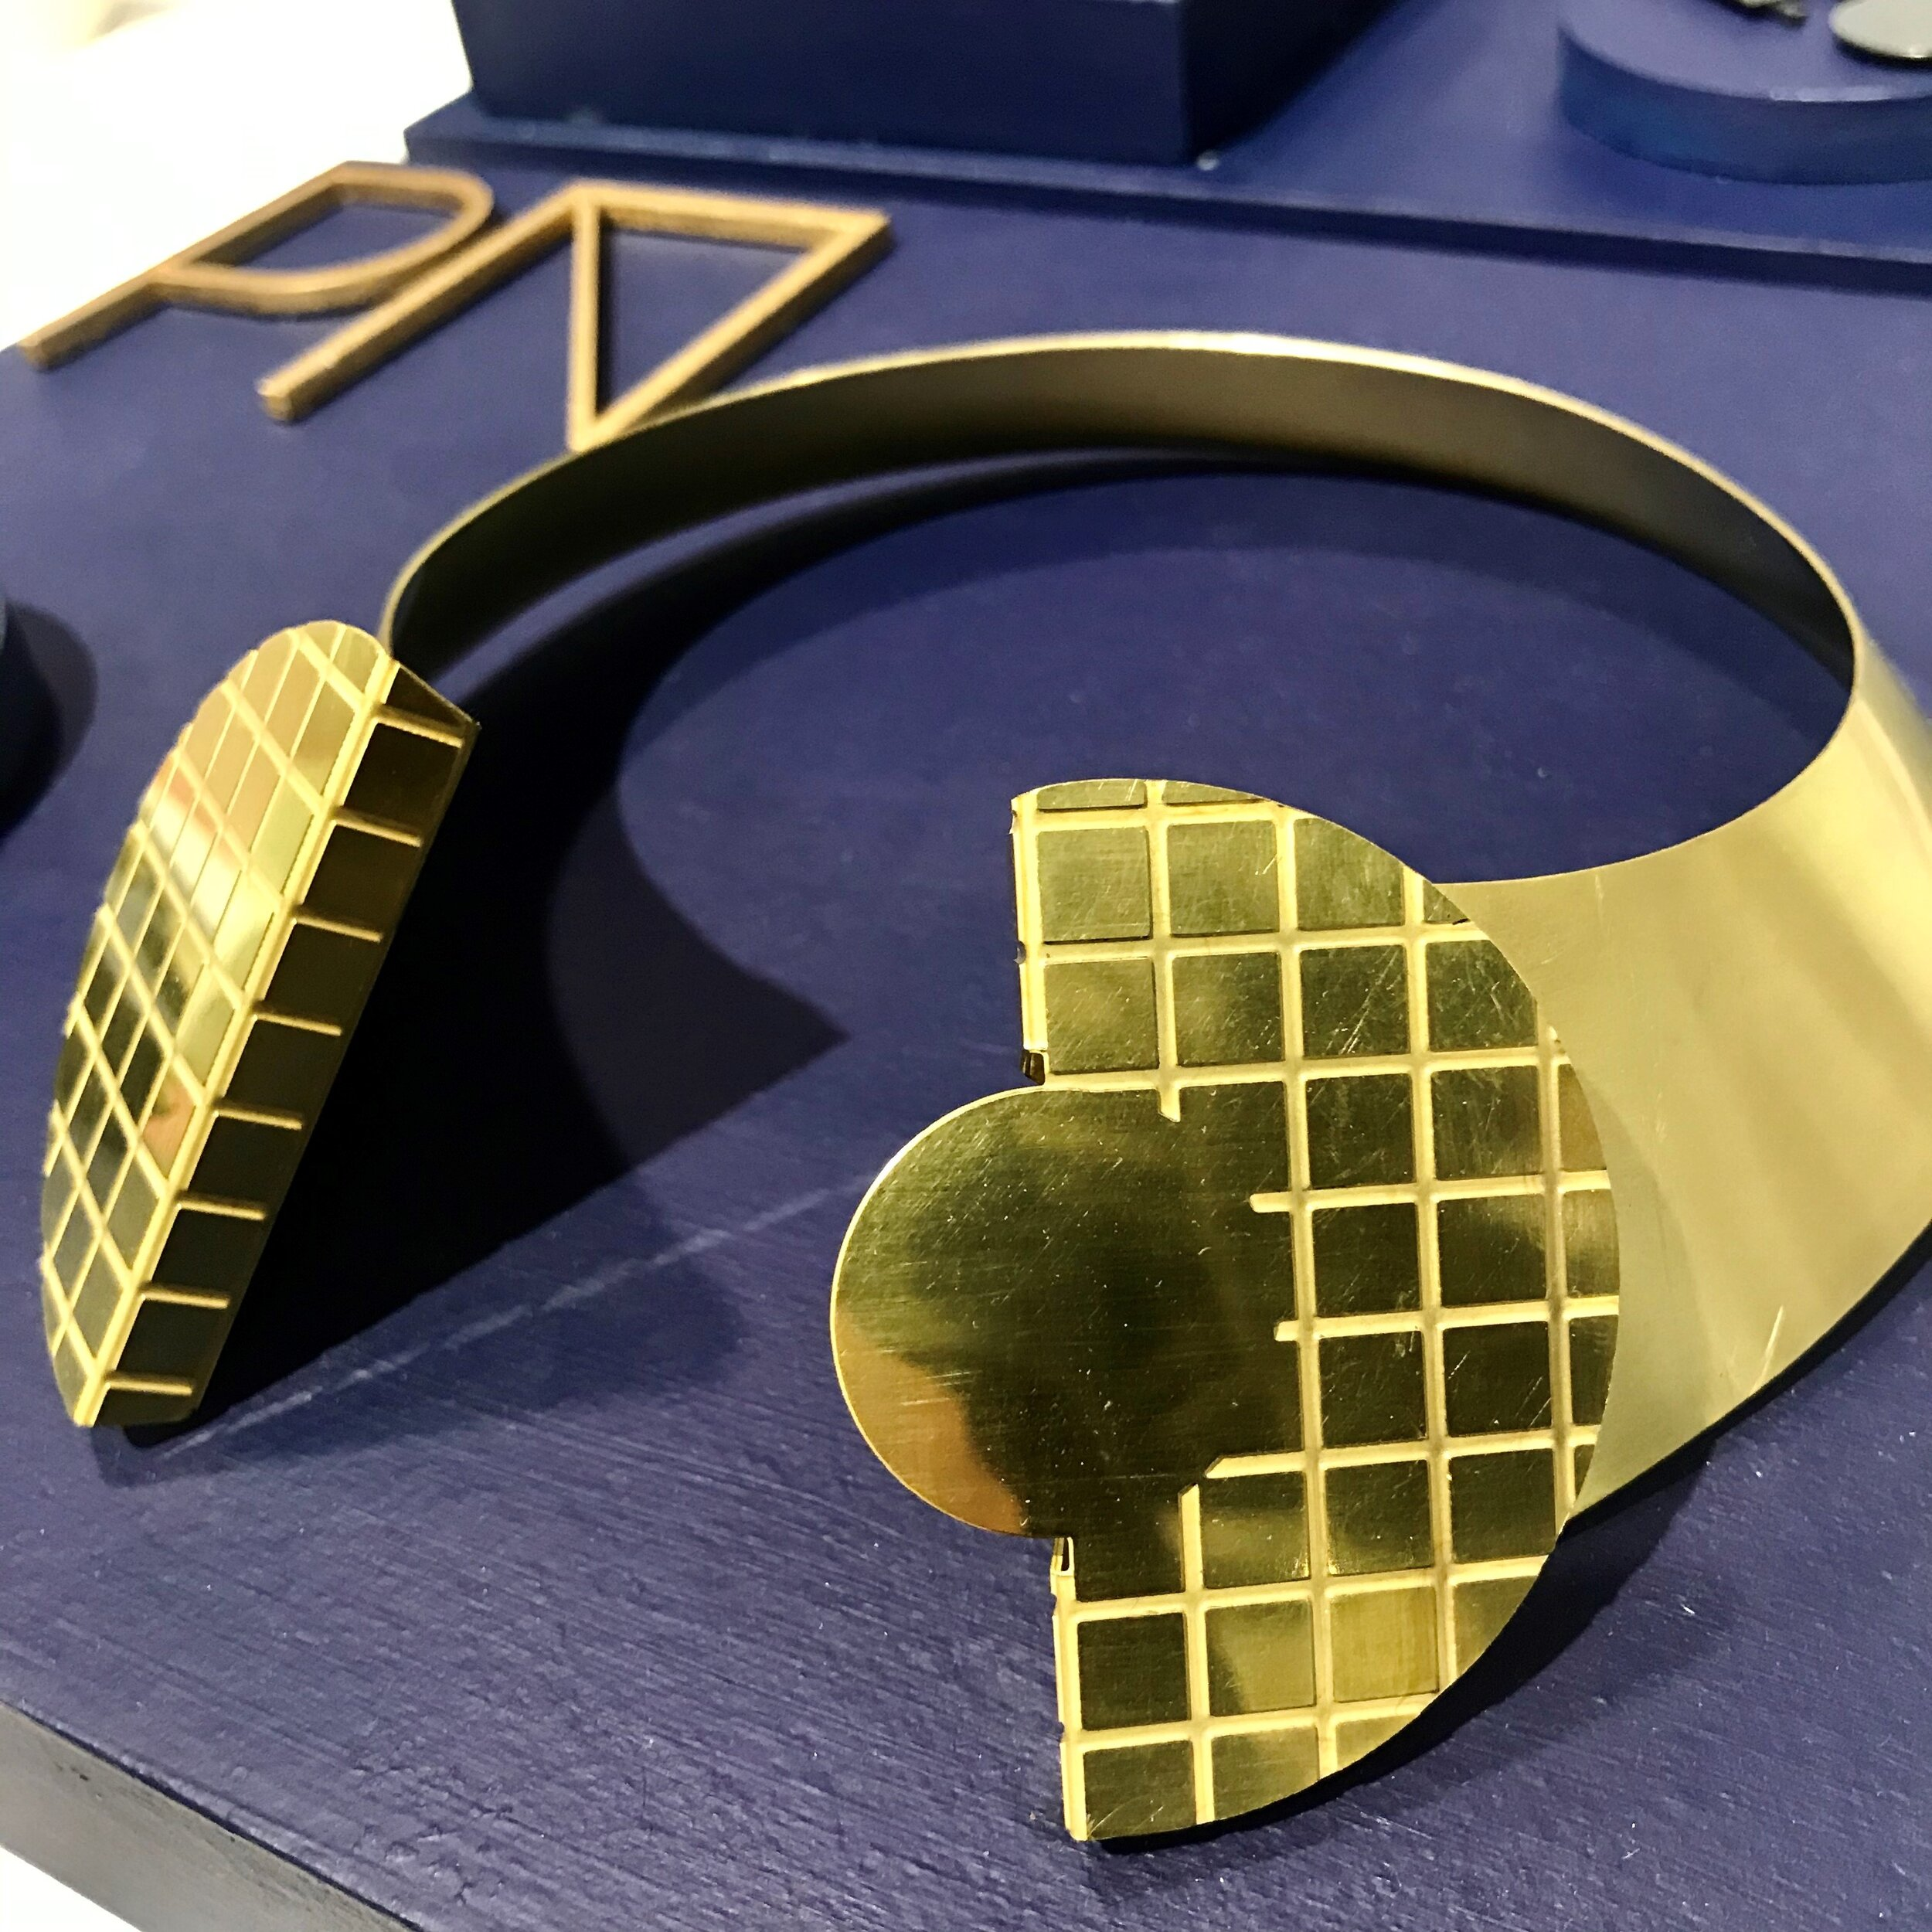 Poppy Norton  - This collection of design led statement jewellery comes in non traditional materials such as brass + lino + acrylic + wood. Taking inspiration from her love and knowledge of product design and architecture the collection carries a strong graphic identity. www.poppynorton.com